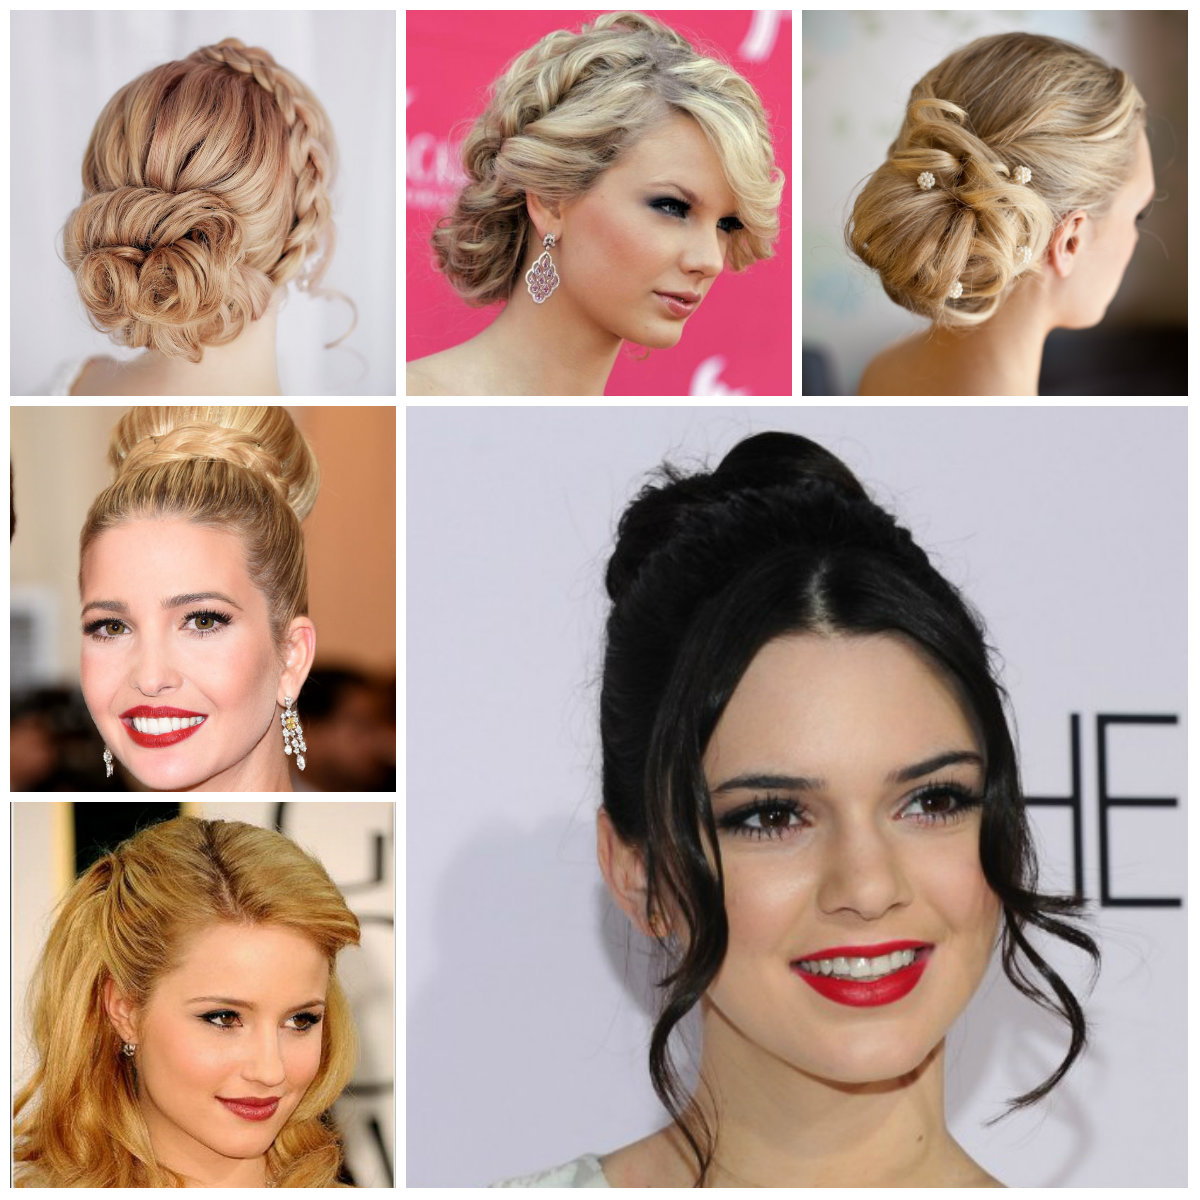 Prom Updo Hairstyles To Try In 2016 2019 Haircuts Hairstyles And